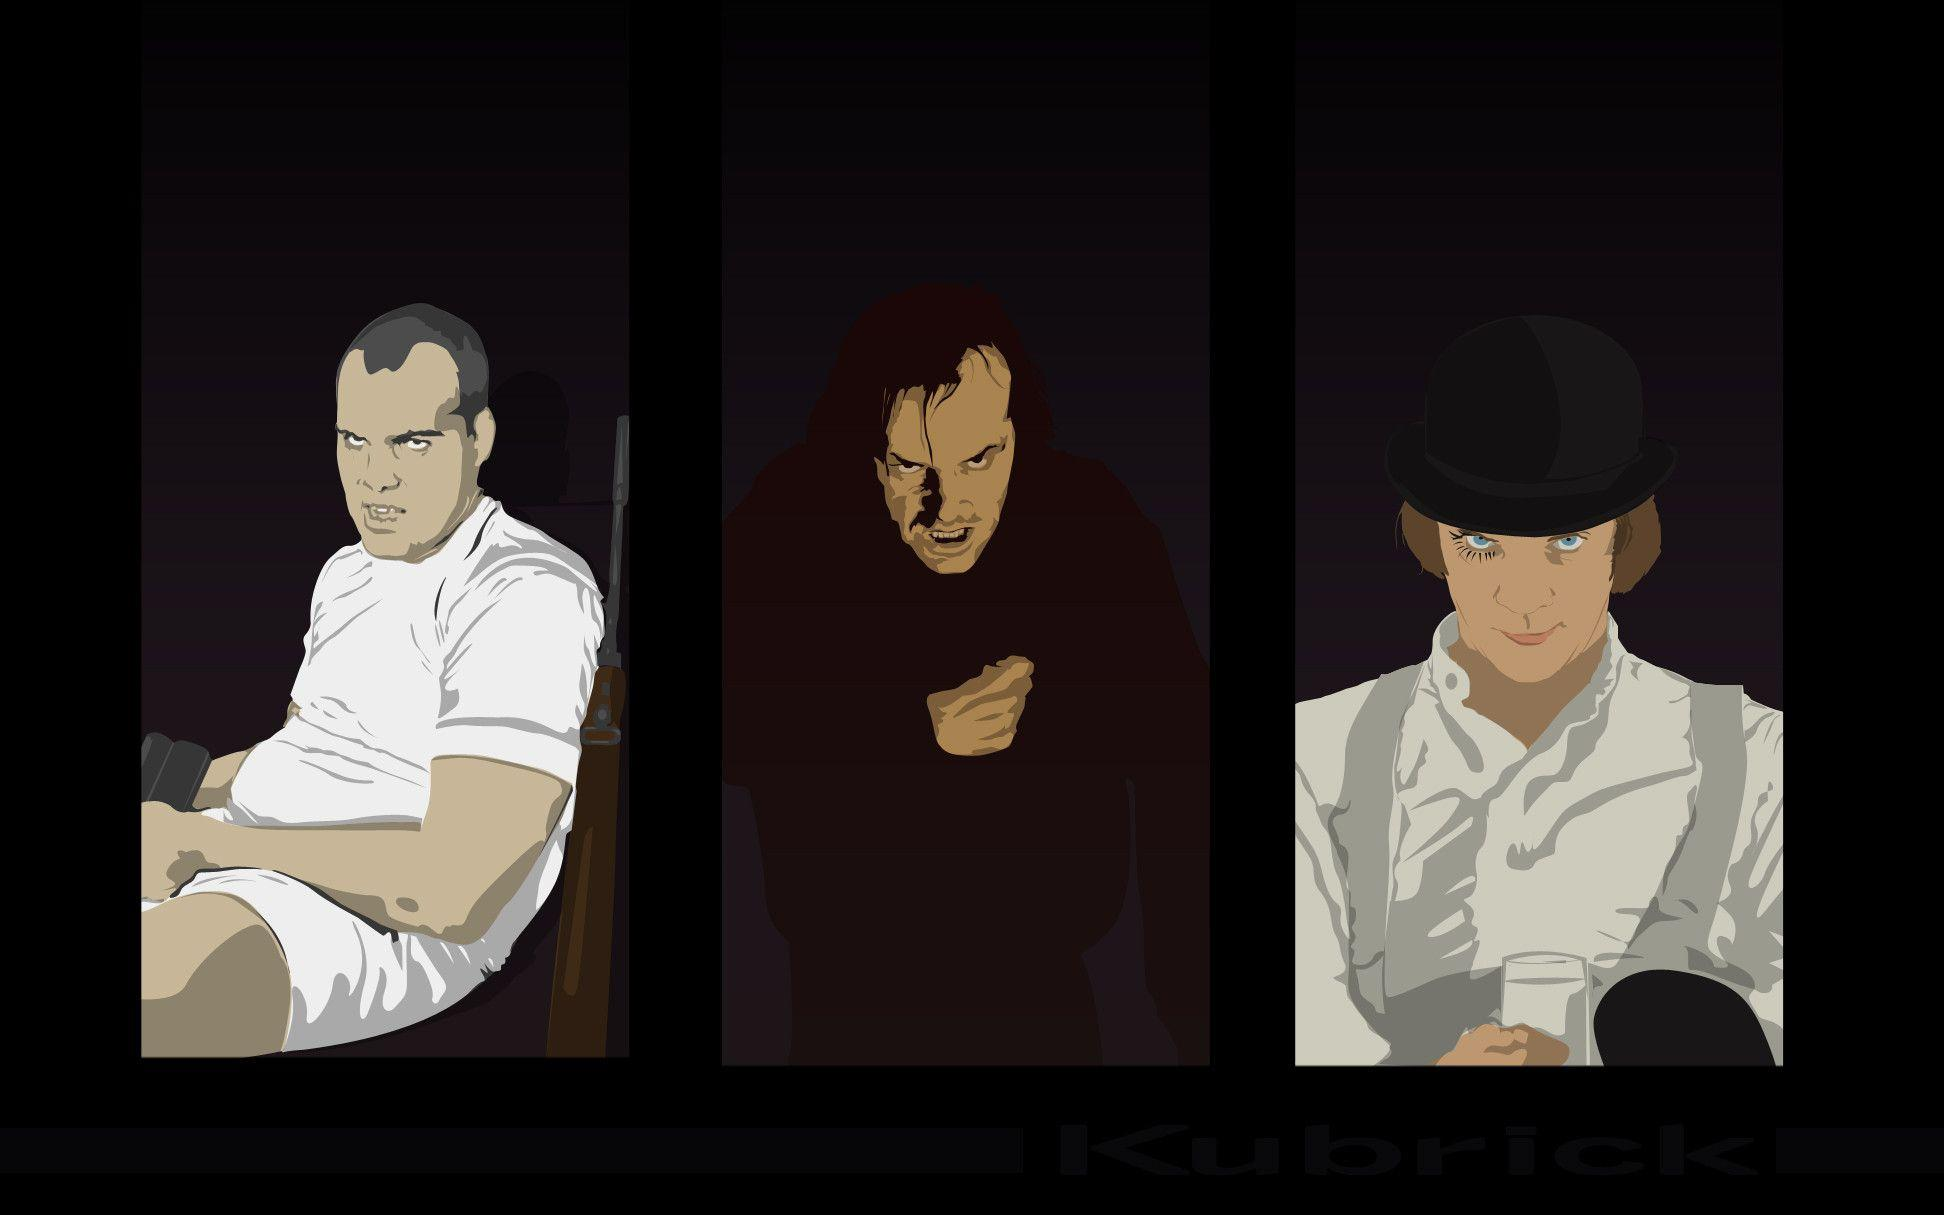 Stanley Kubrick Wallpapers - Wallpaper Cave A Clockwork Orange Wallpaper 1920x1080